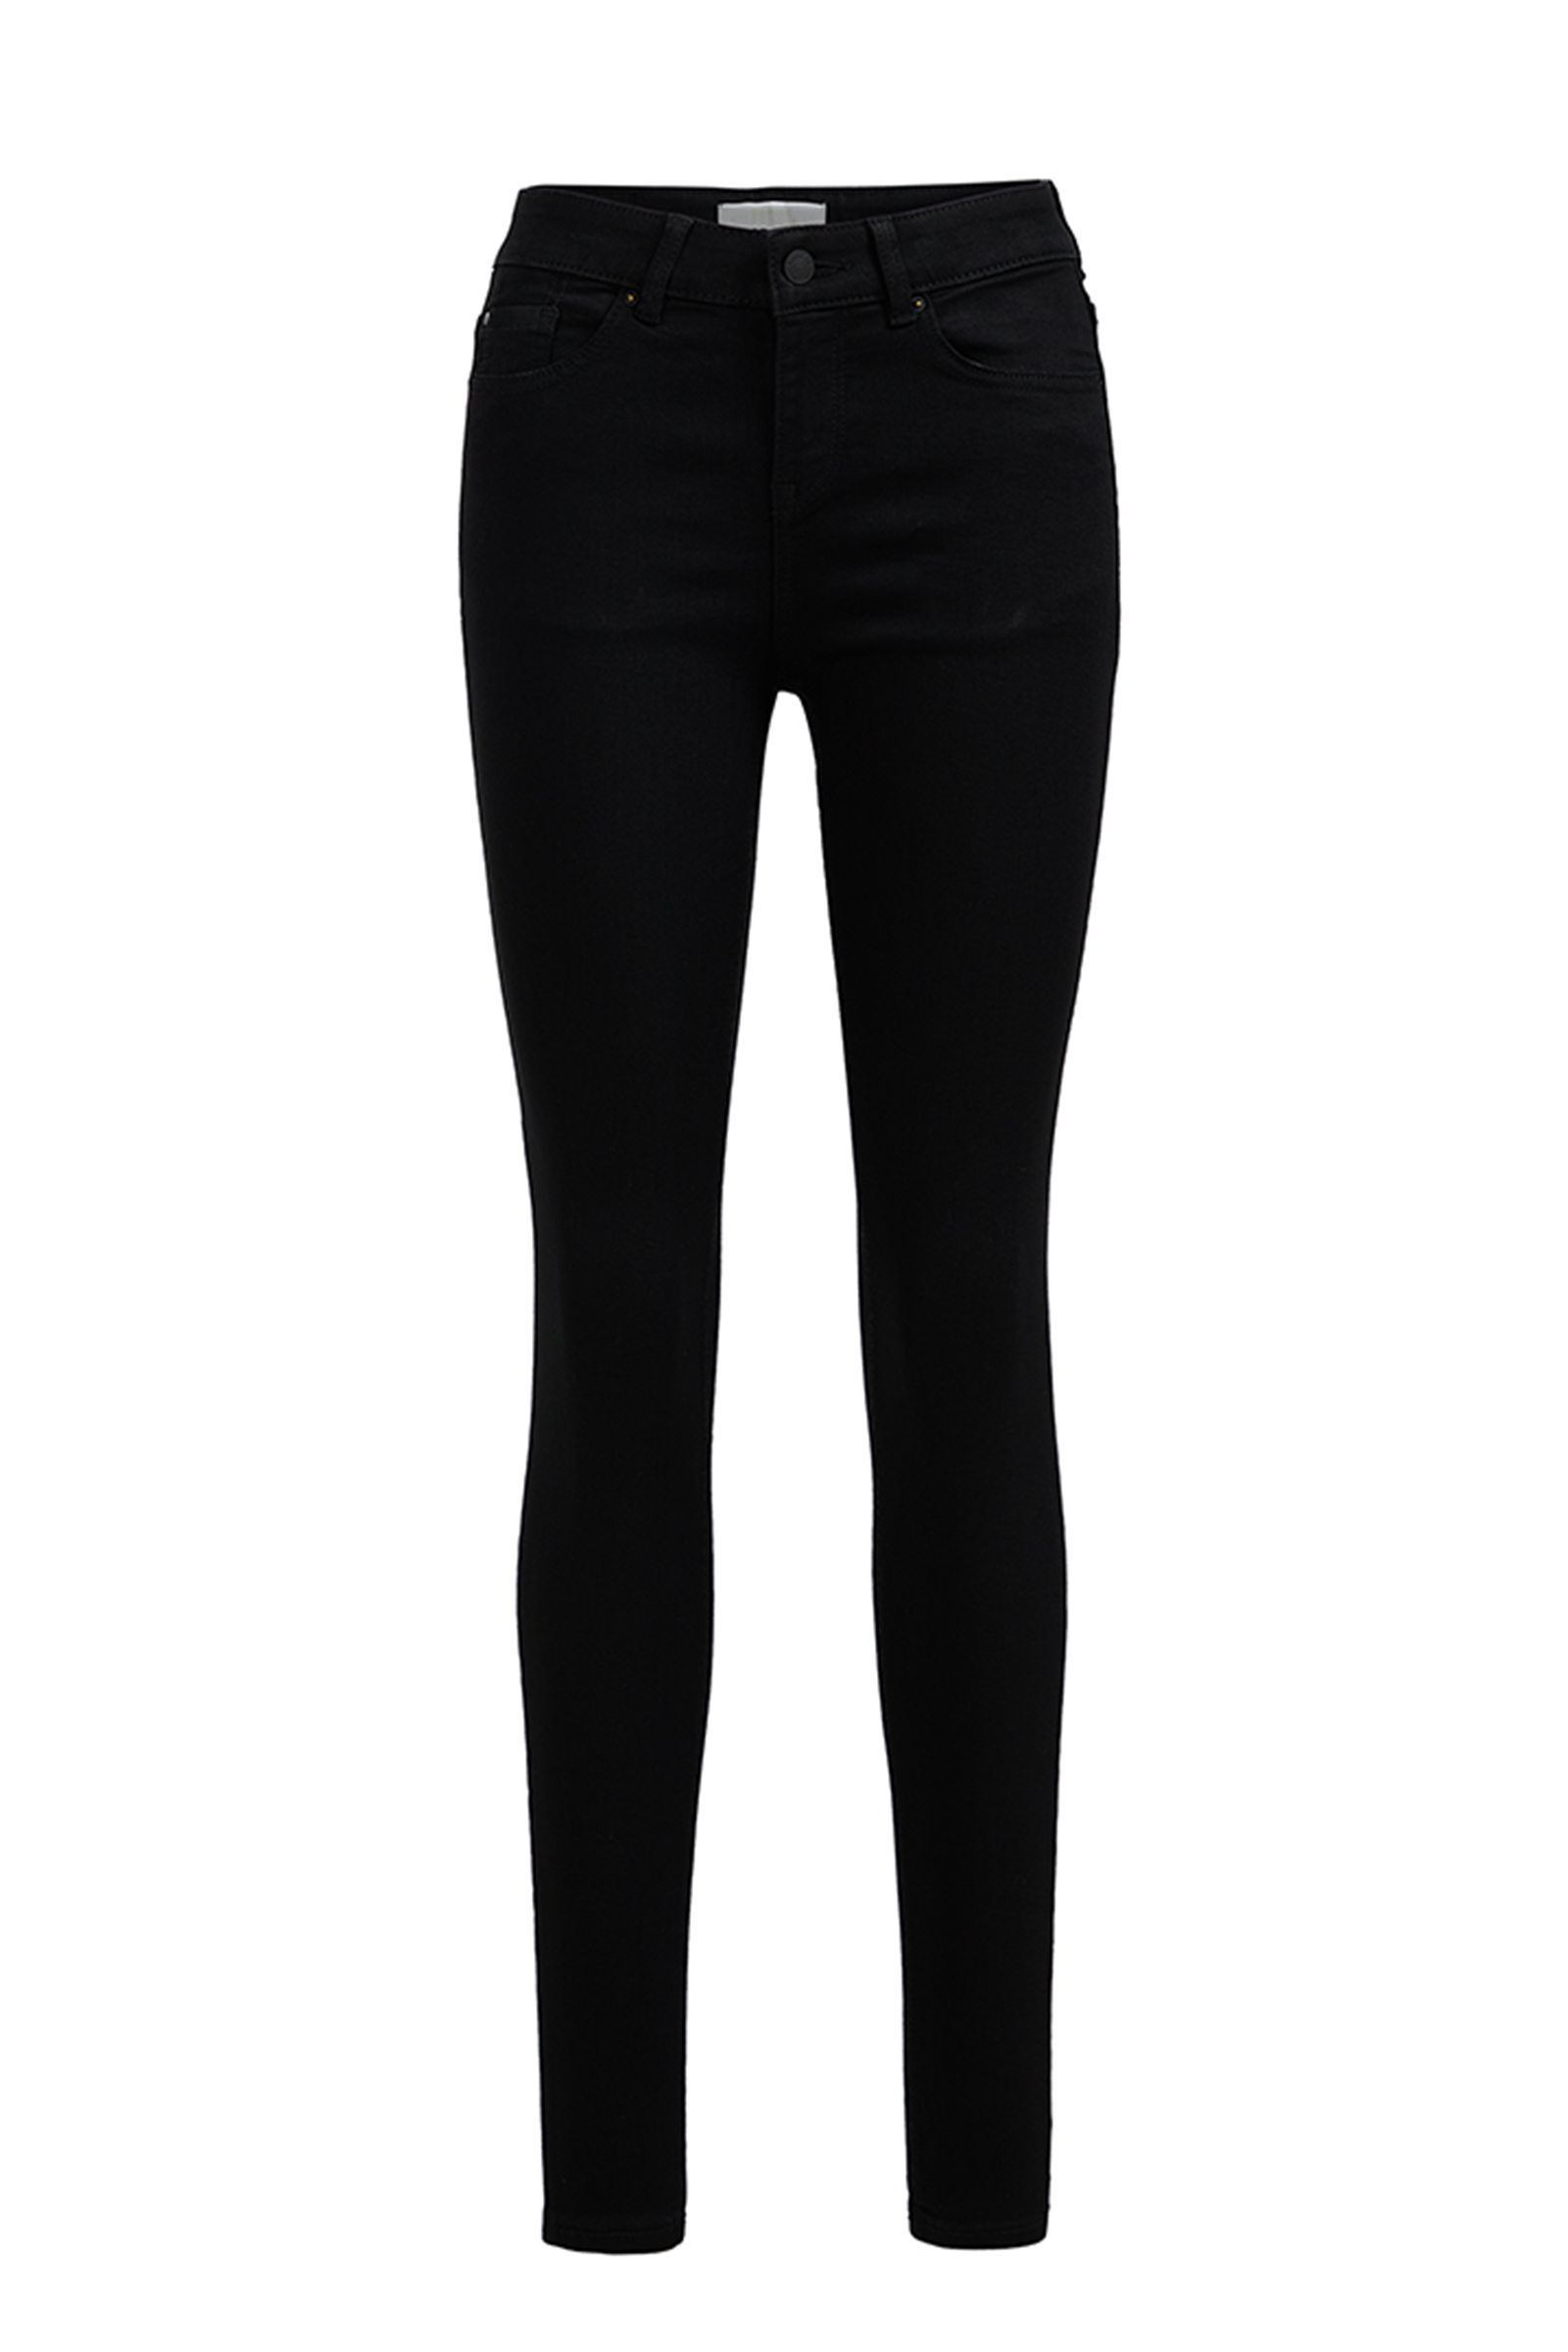 Dames mid rise super skinny recovery jeans